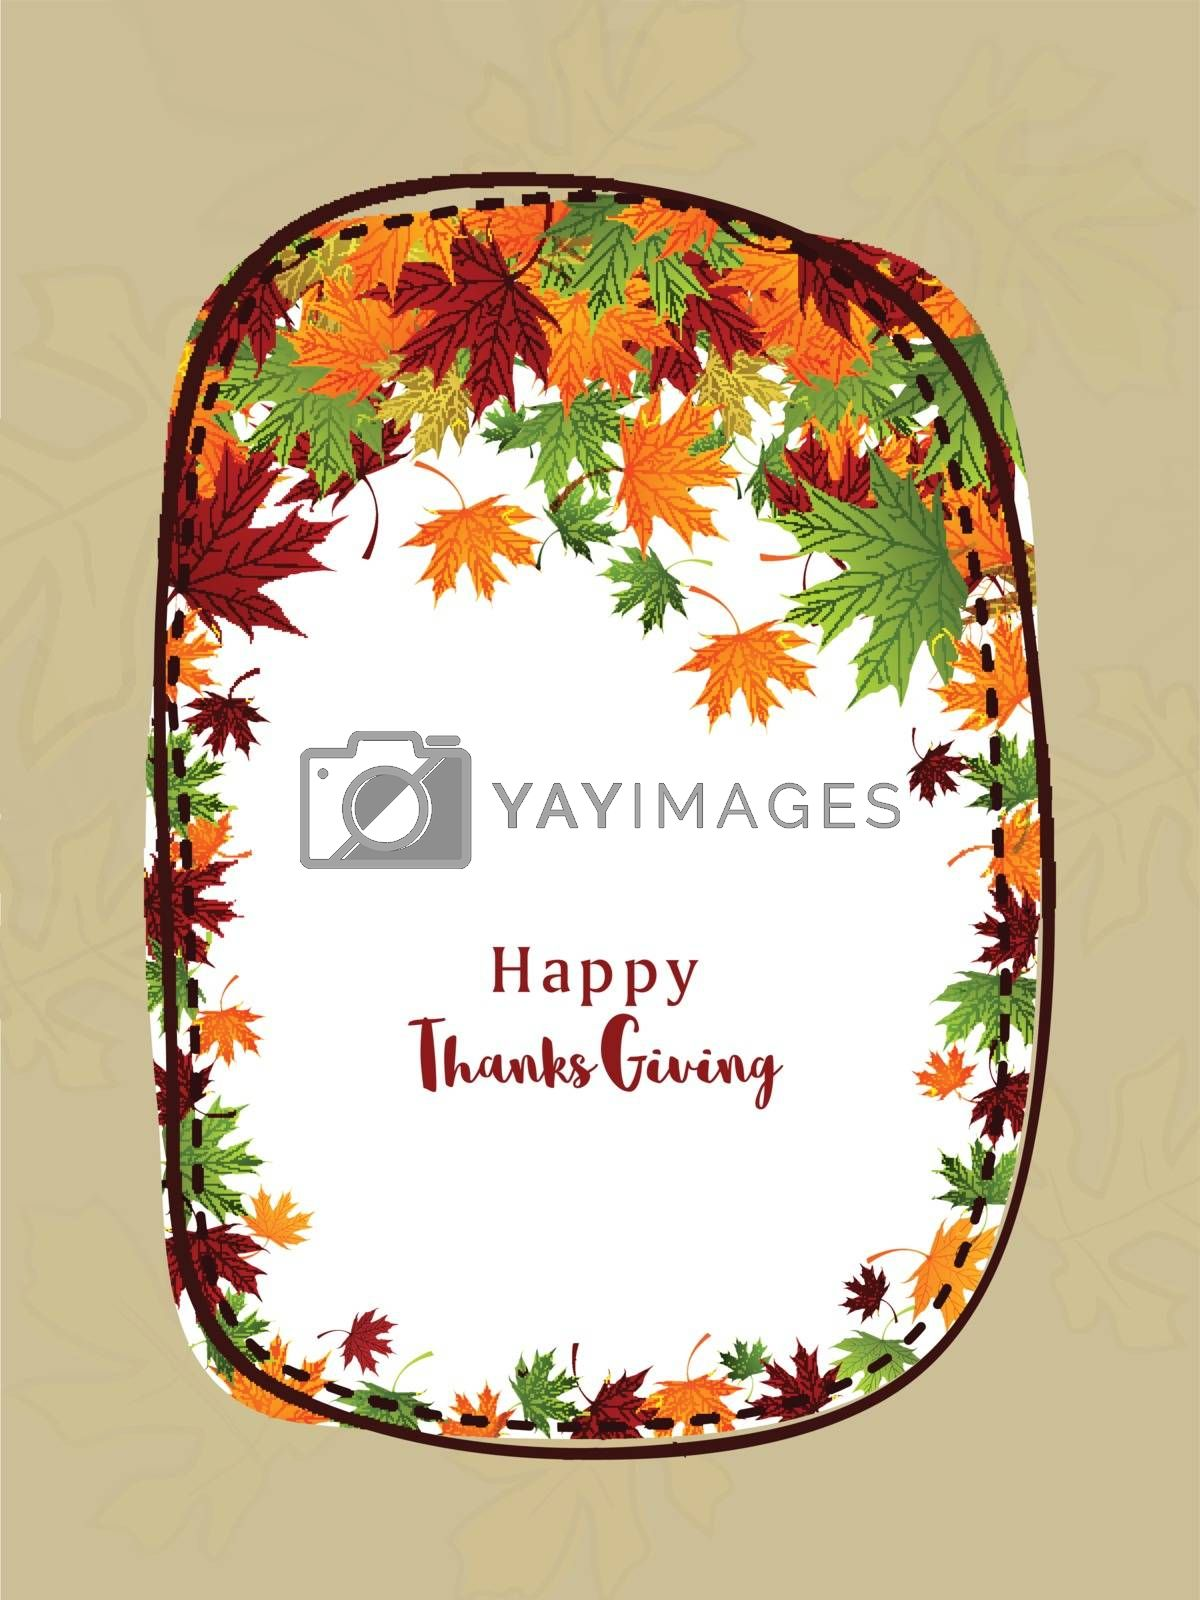 Colorful maple leaves decorated background. Elegant greeting card design with space for your wishes. Vector illustration for Happy Thanksgiving Day celebration.